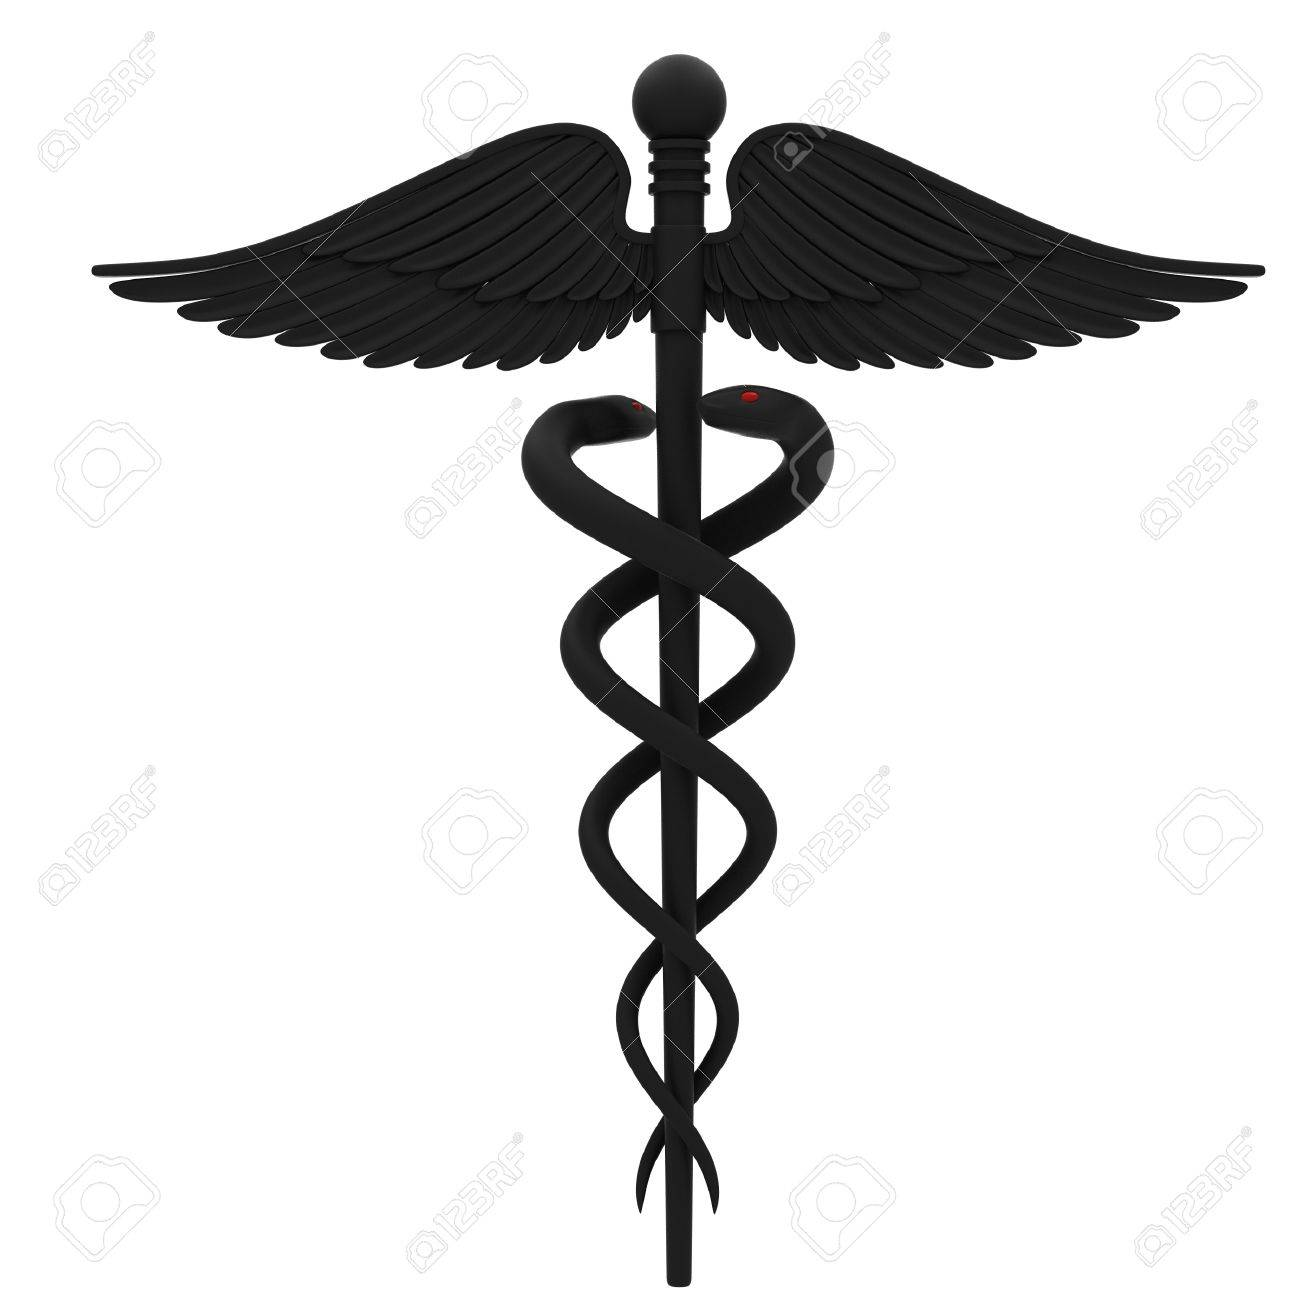 medical caduceus symbol in black isolated on white background rh 123rf com